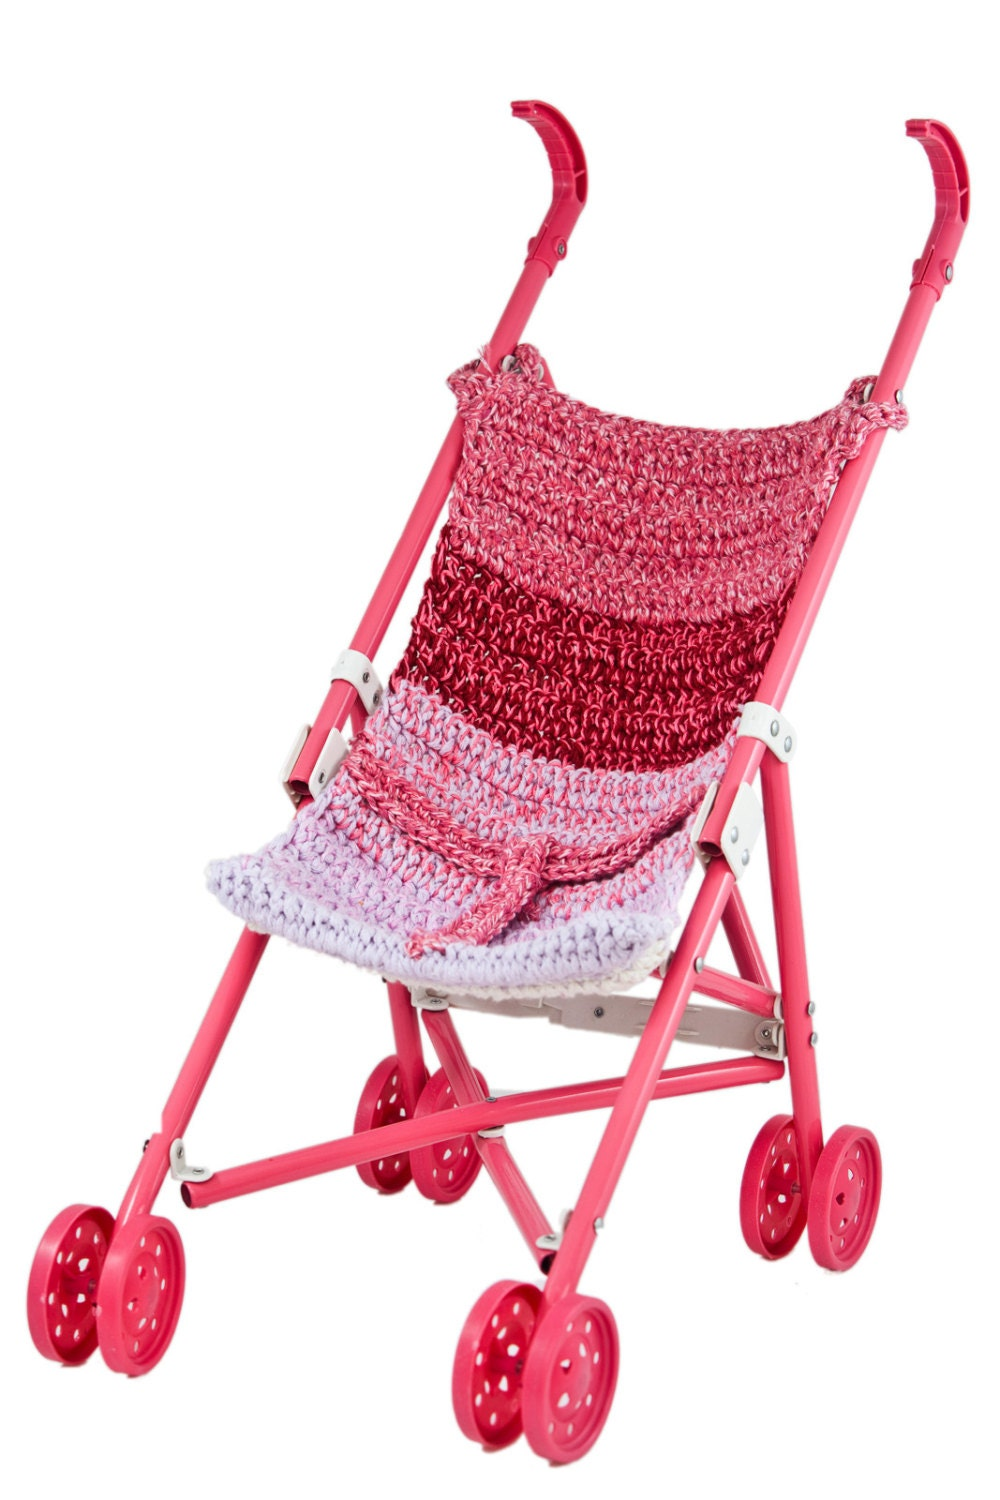 Toys For Strollers : Hand made crochet pink baby doll stroller toy